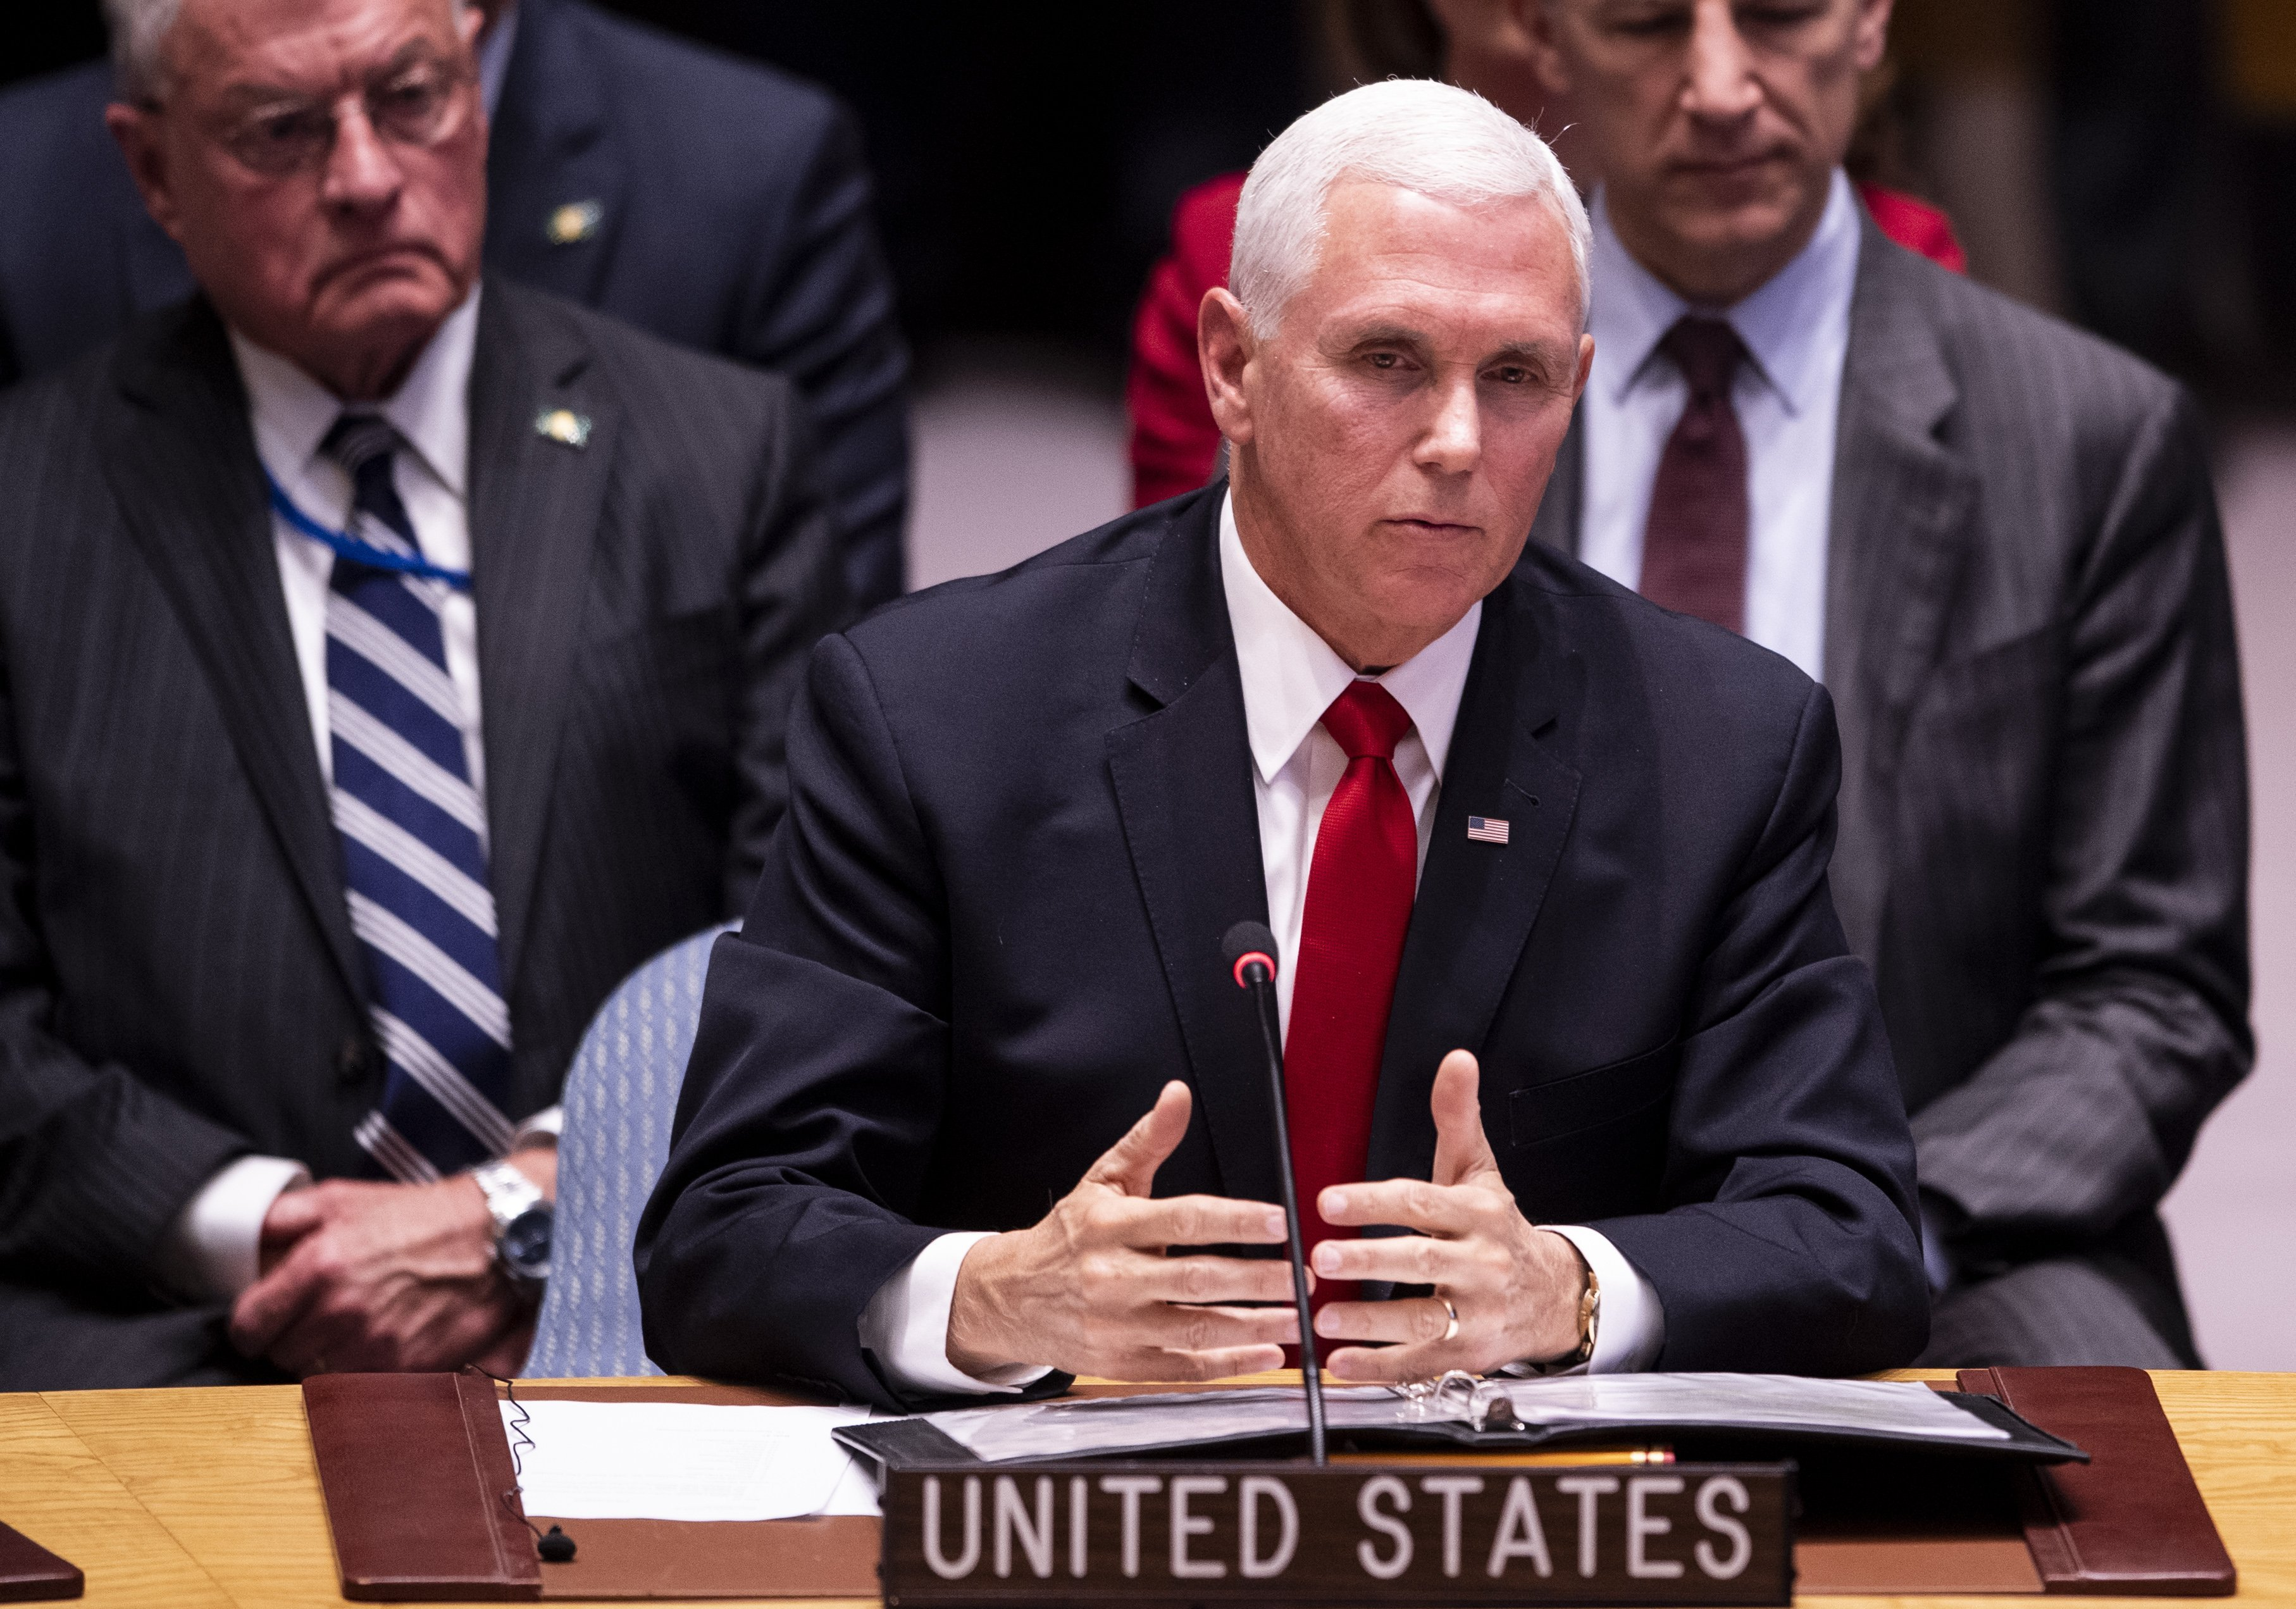 Pence NH cancellation: Employee of drug recovery center trafficked fentanyl